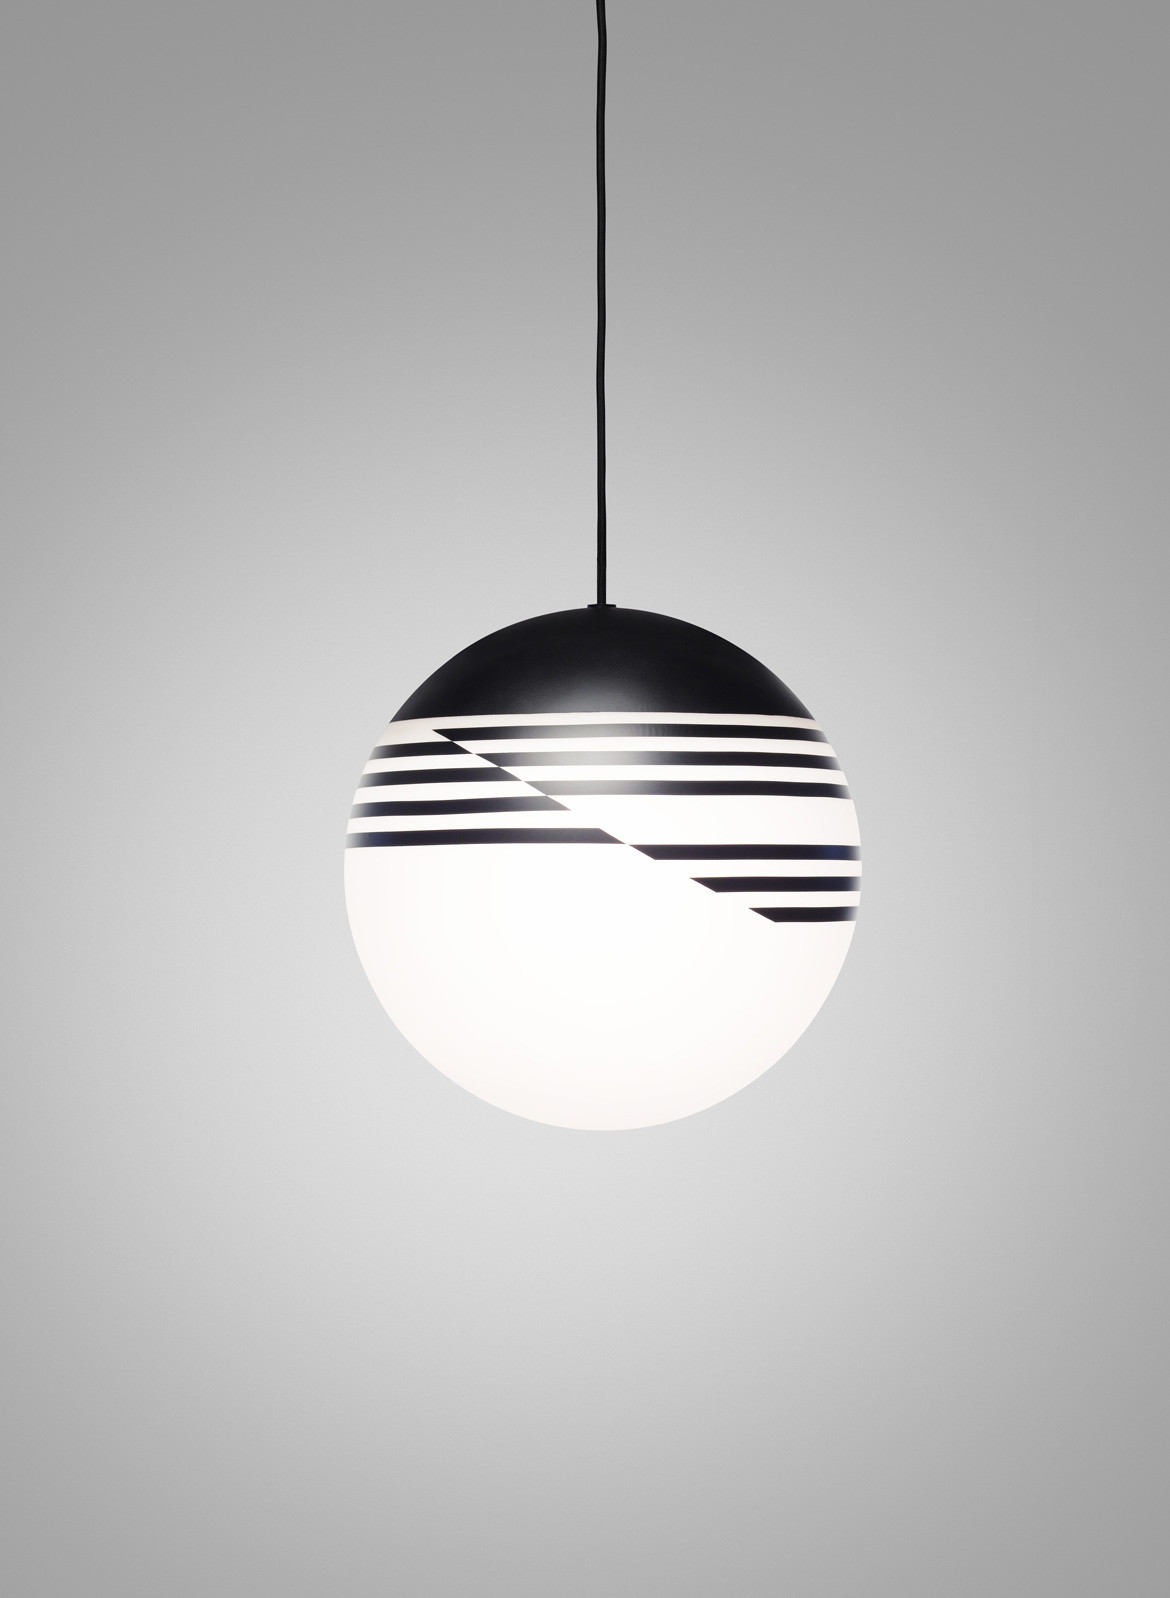 Space Furniture Lee Broom Optical pendant